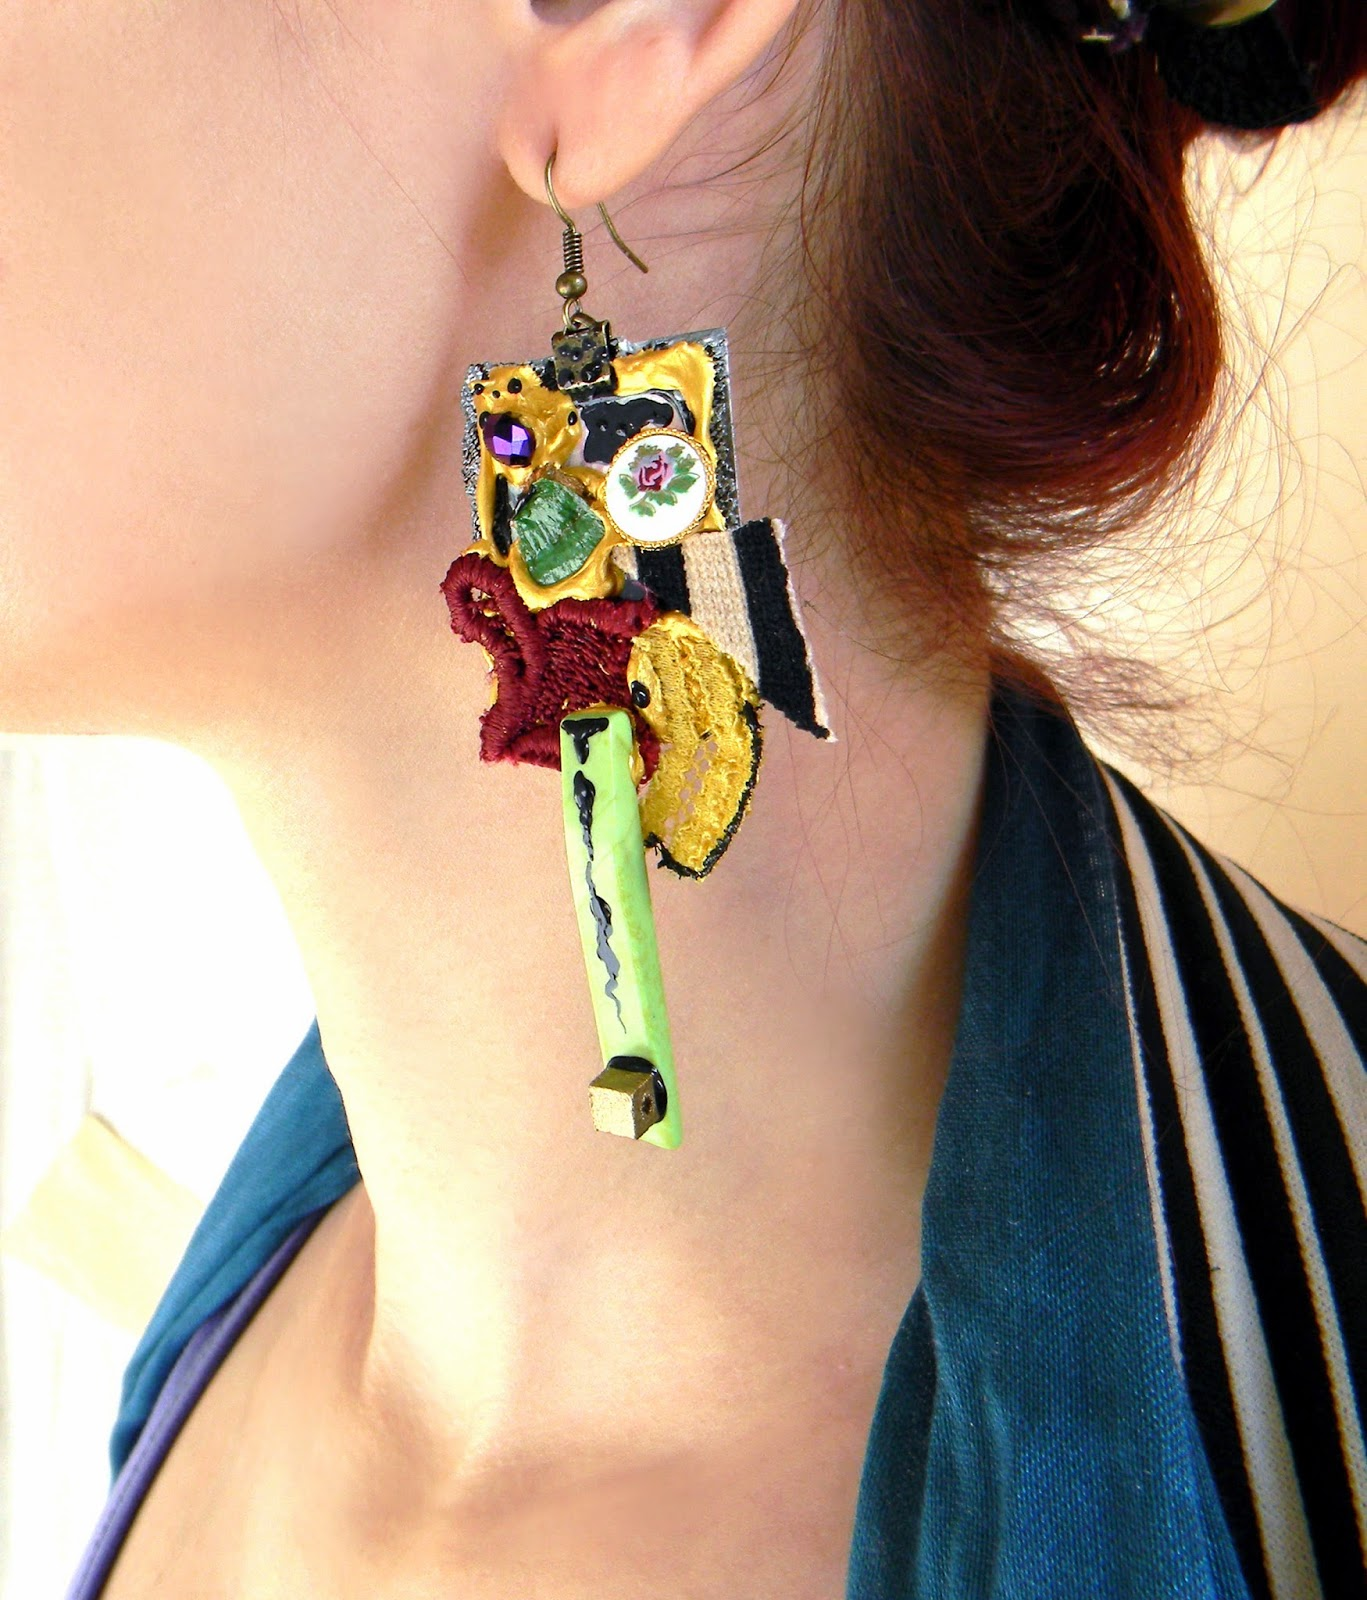 Gypsy Fashion Collage Earrings, Statement Jewelry with Hand Painted Details, Howlite, Beads and Lace Adornments